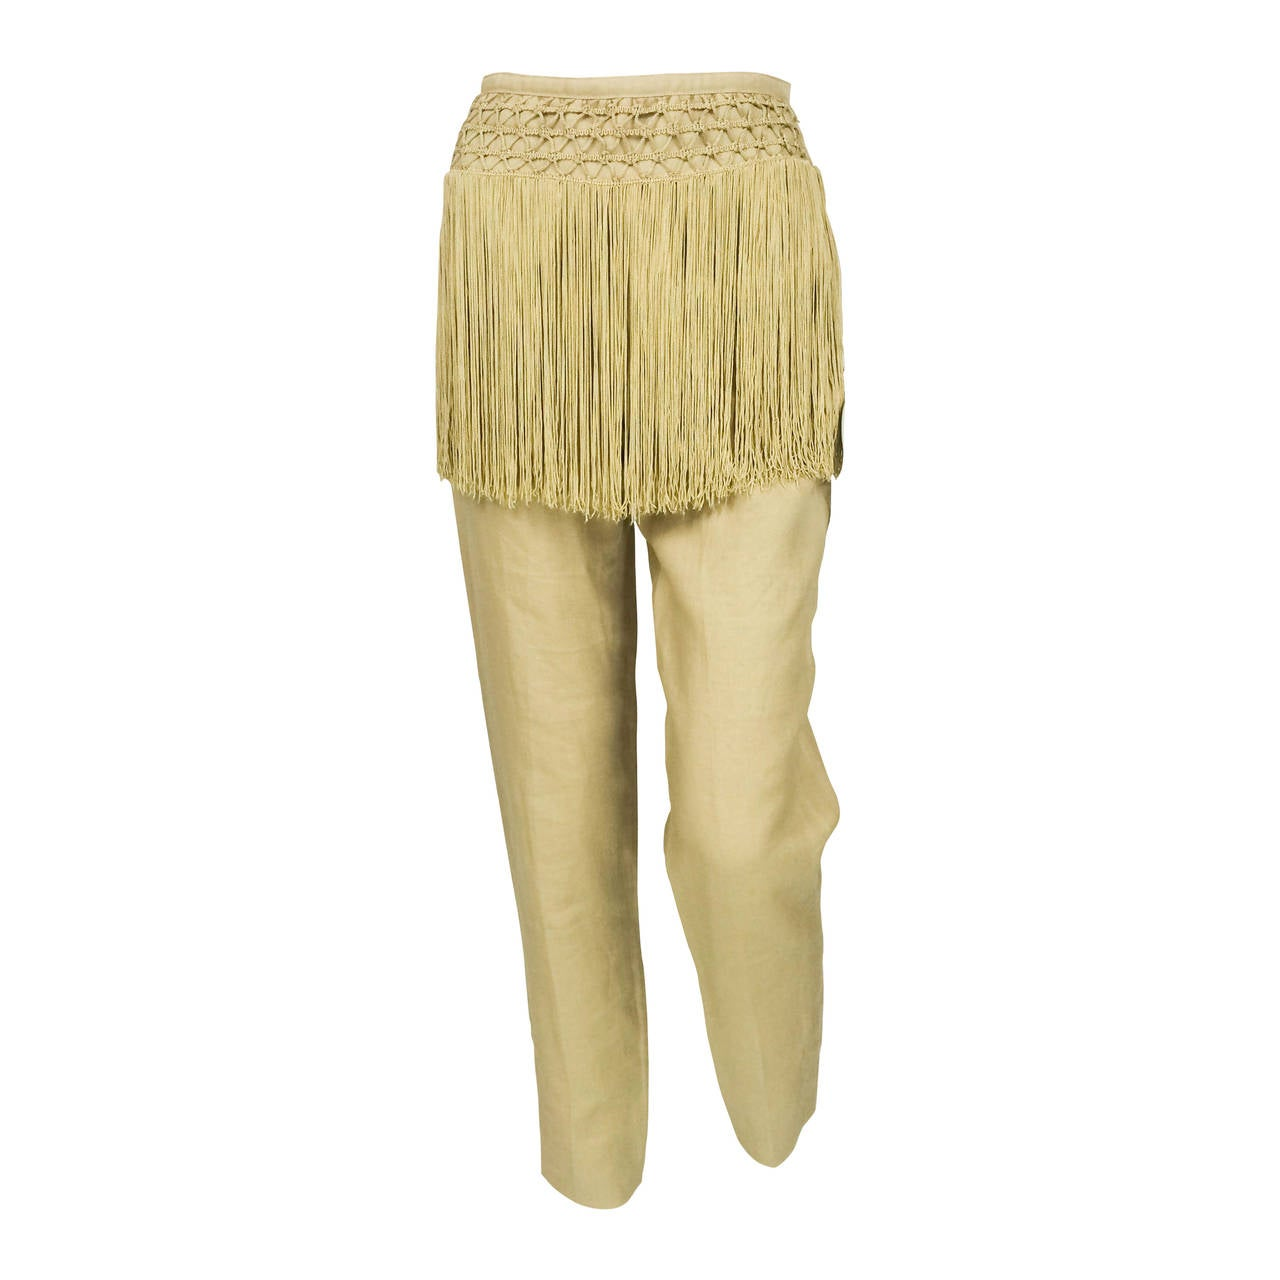 Valentino Fringed Linen Pants - 1990s 1